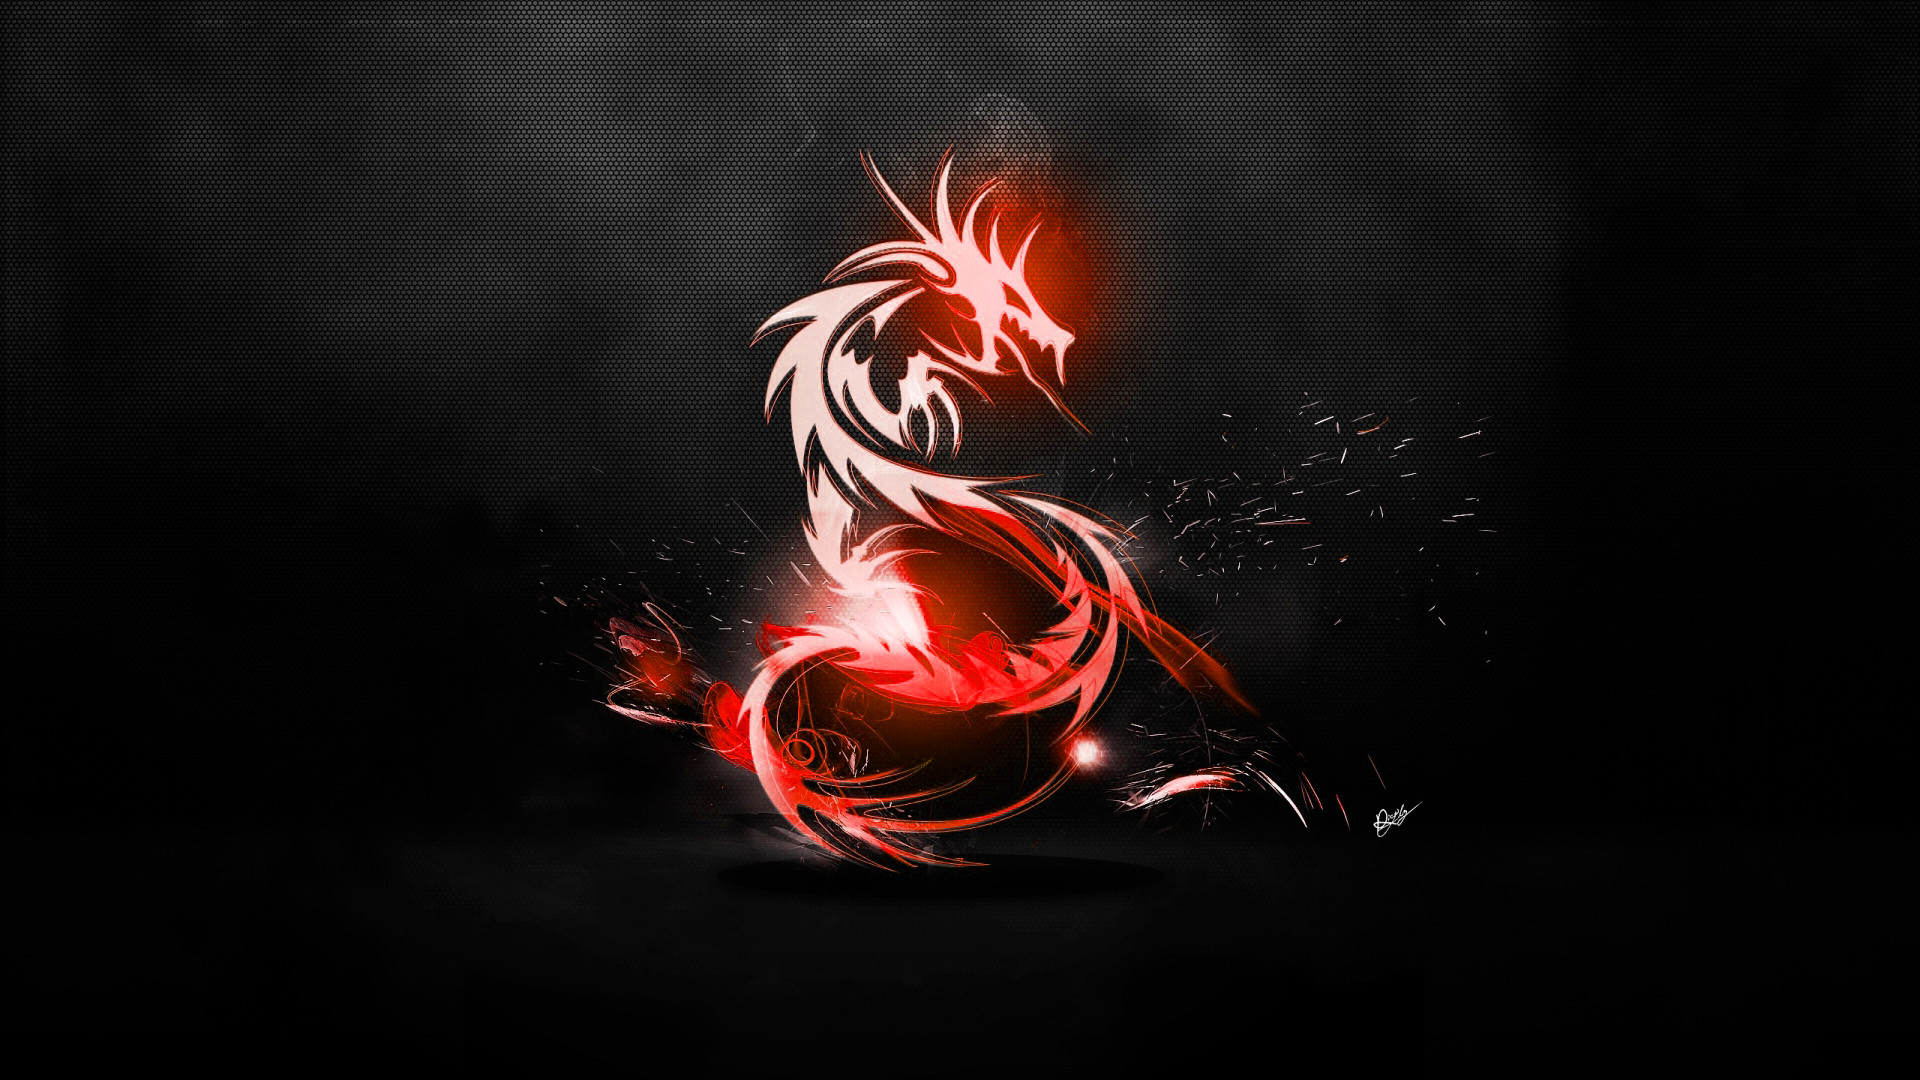 Abstract Dragon Wallpaper (Red/Carbon fibre black) by maciekporebski .